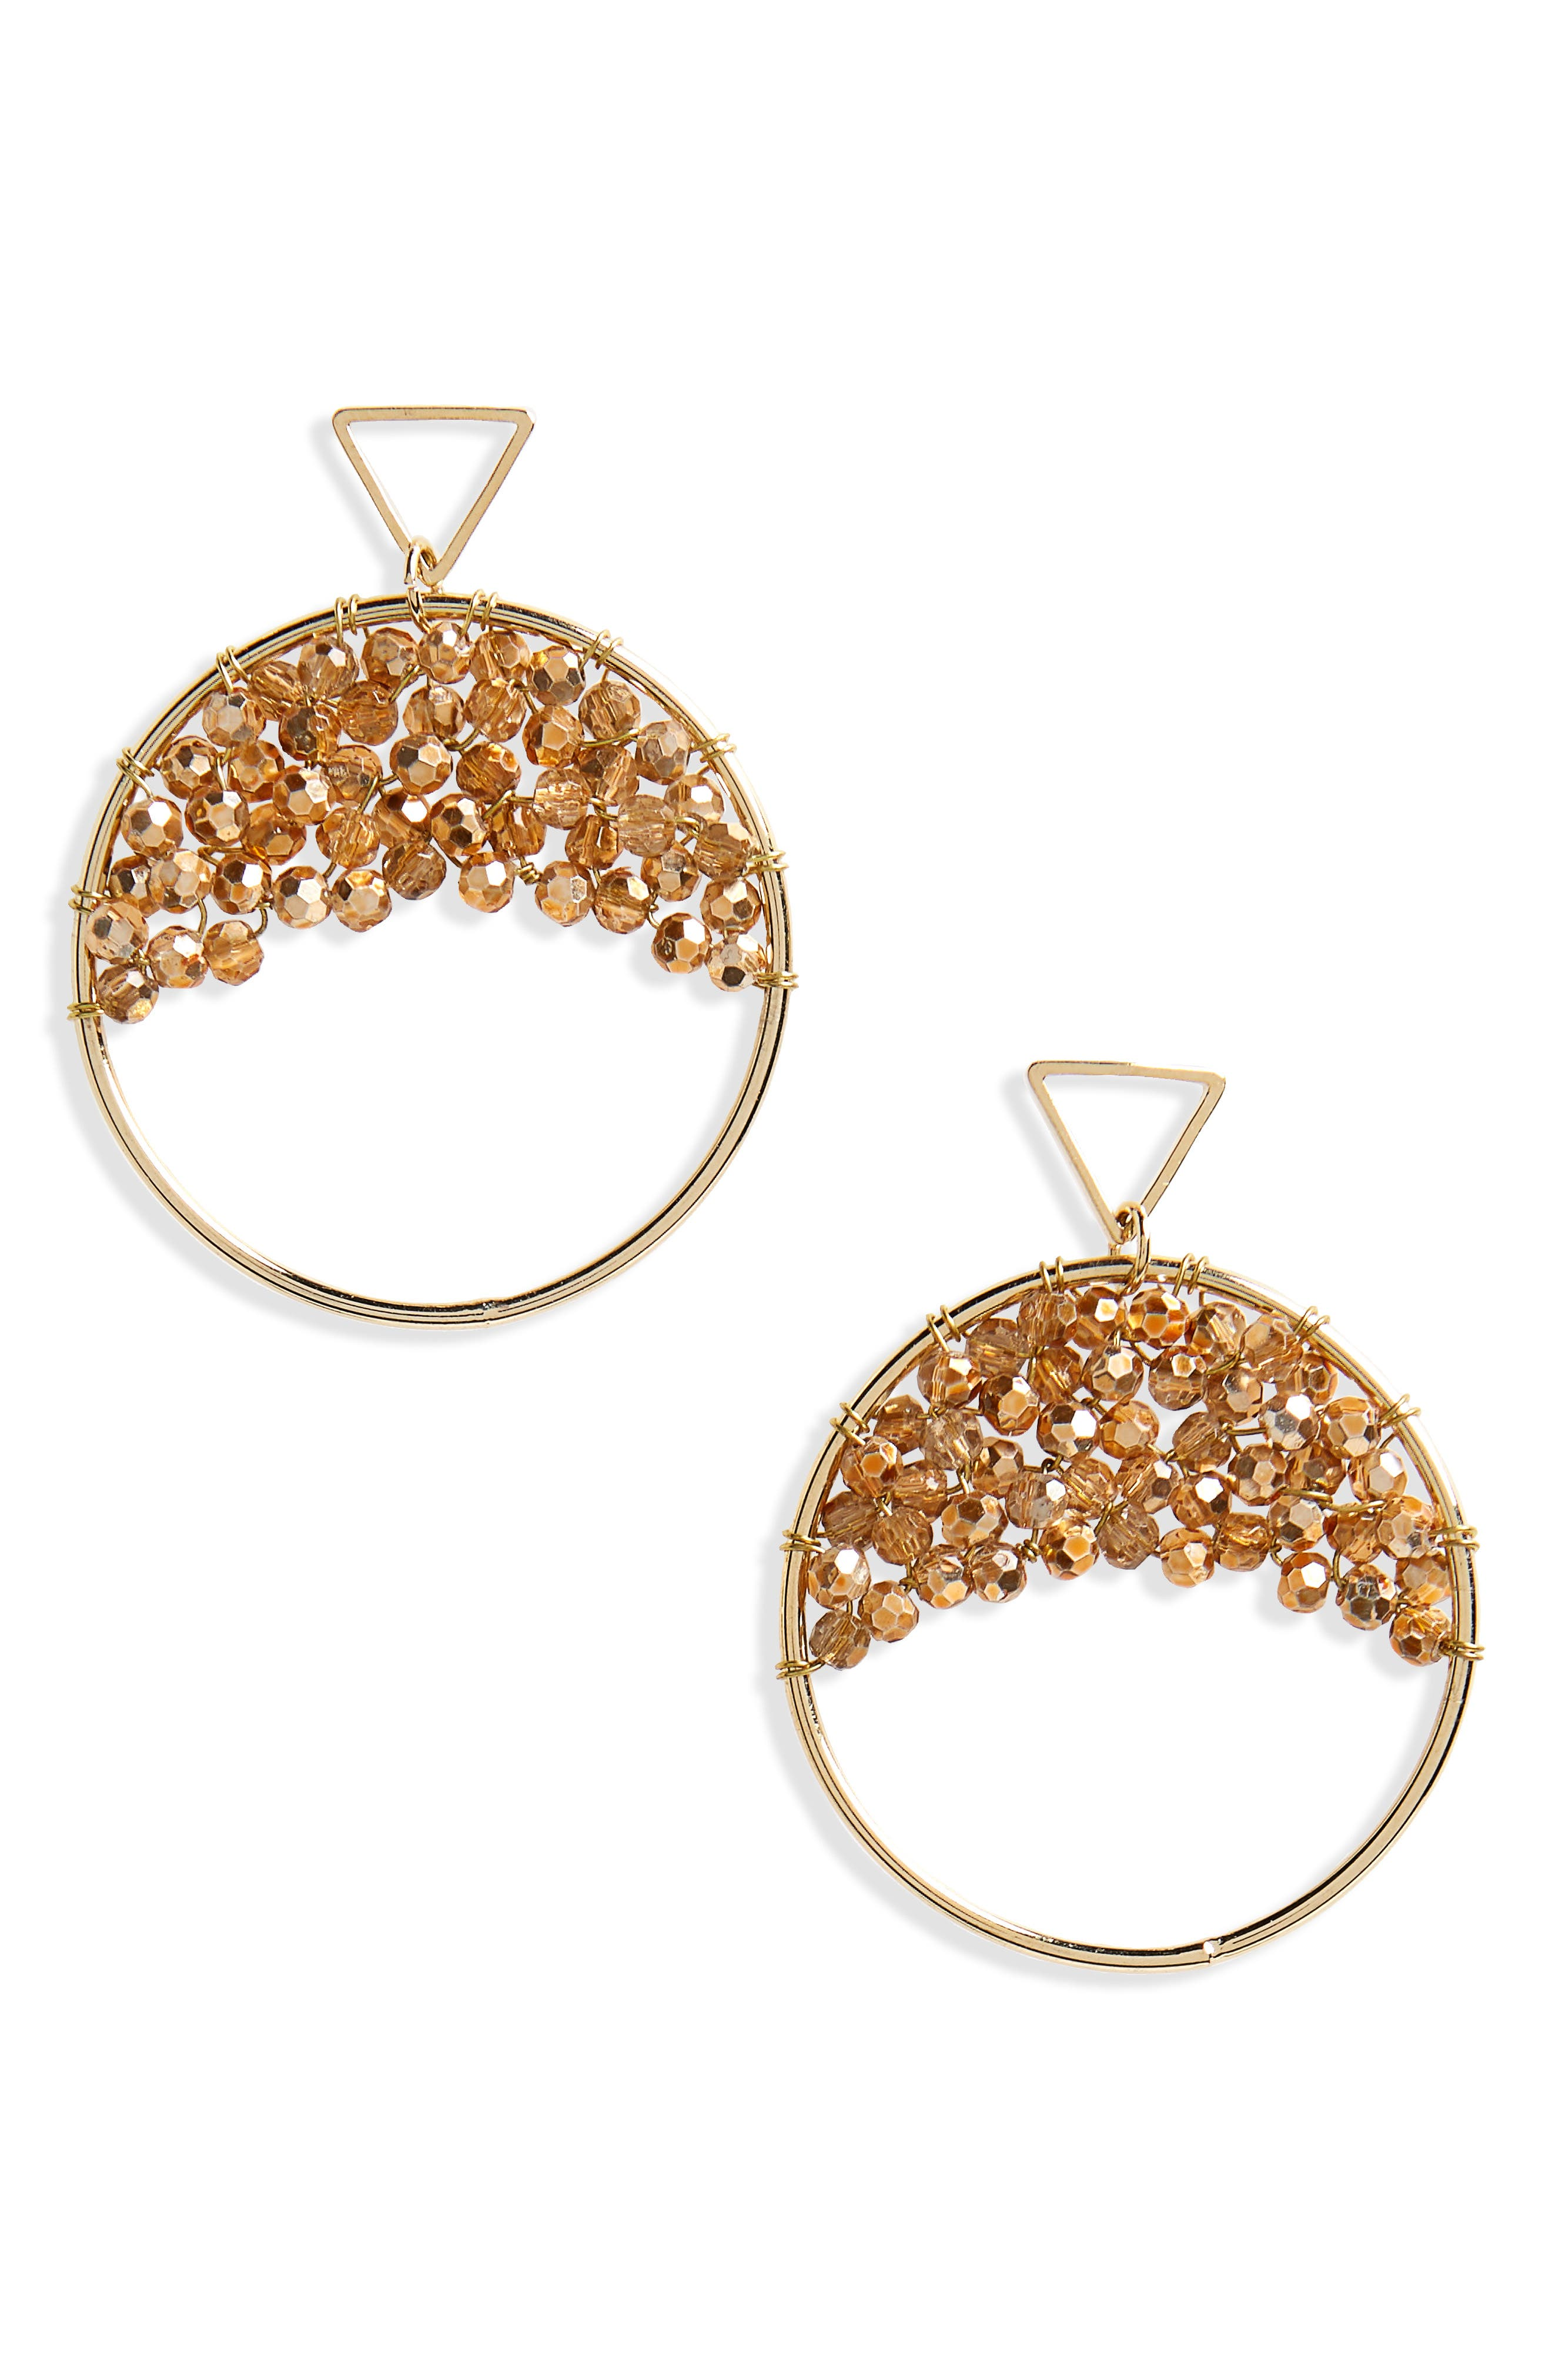 Crystal Beaded Circle Earrings,                         Main,                         color, CHAMPAGNE